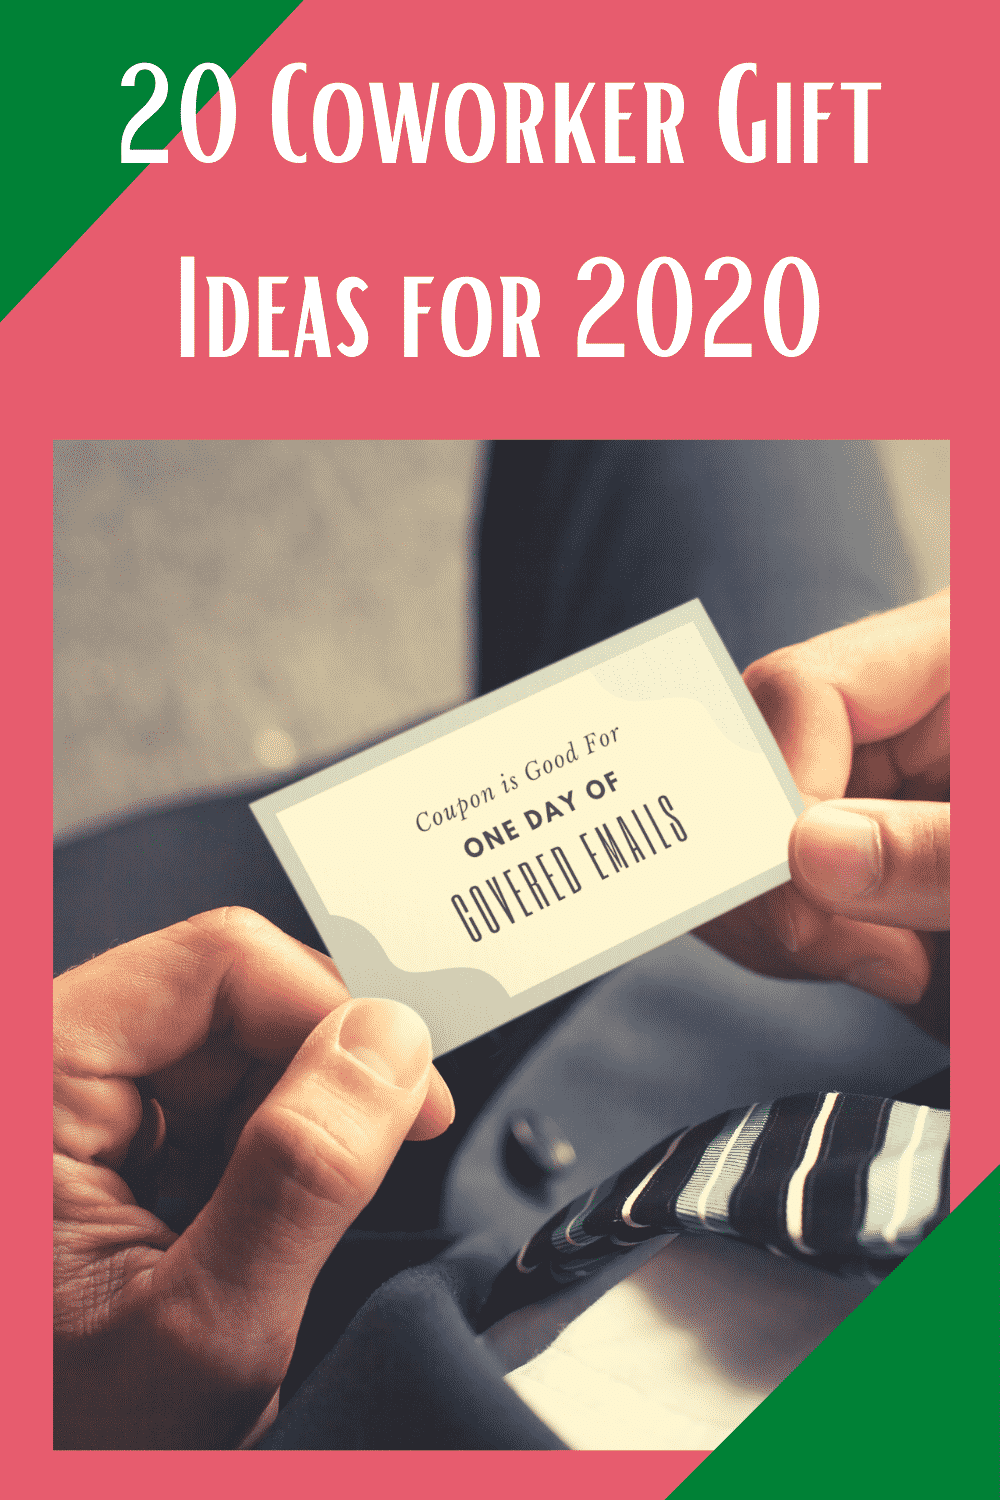 20 Coworker Gift Ideas for 2020